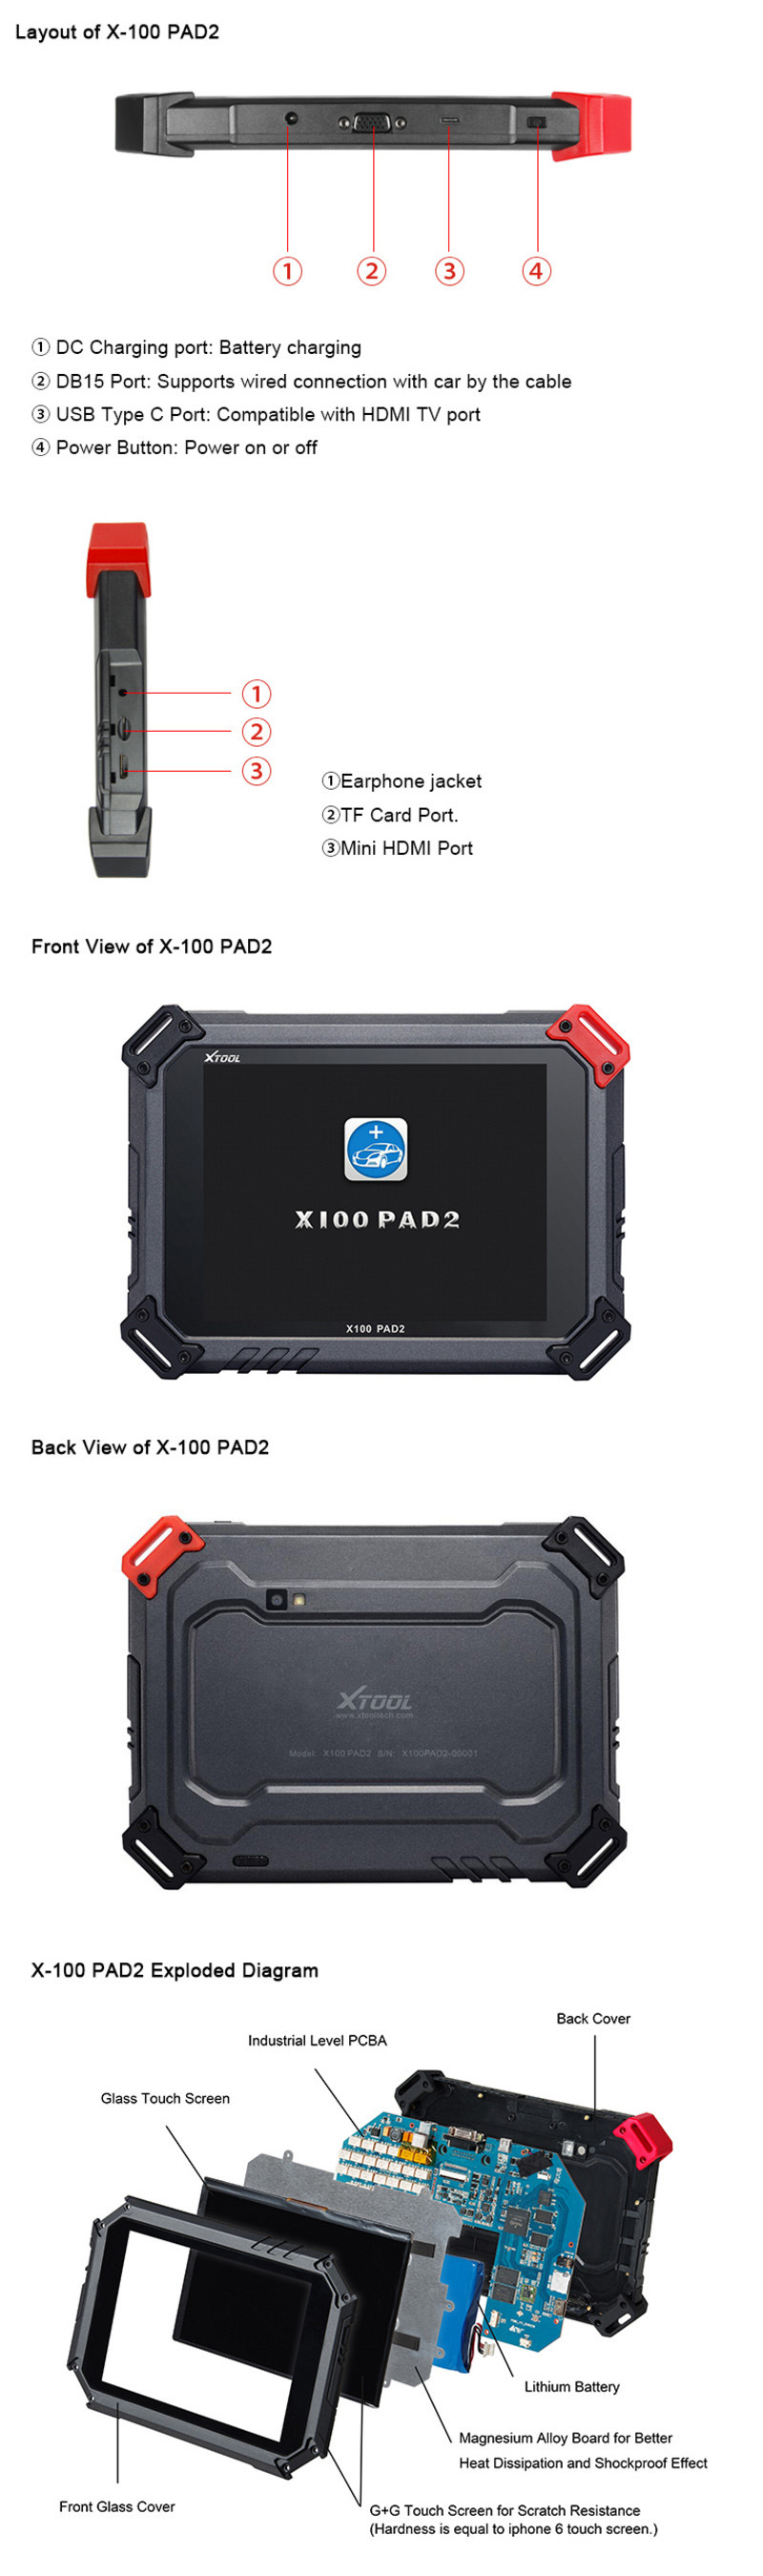 XTOOL X100 PAD2 Layout